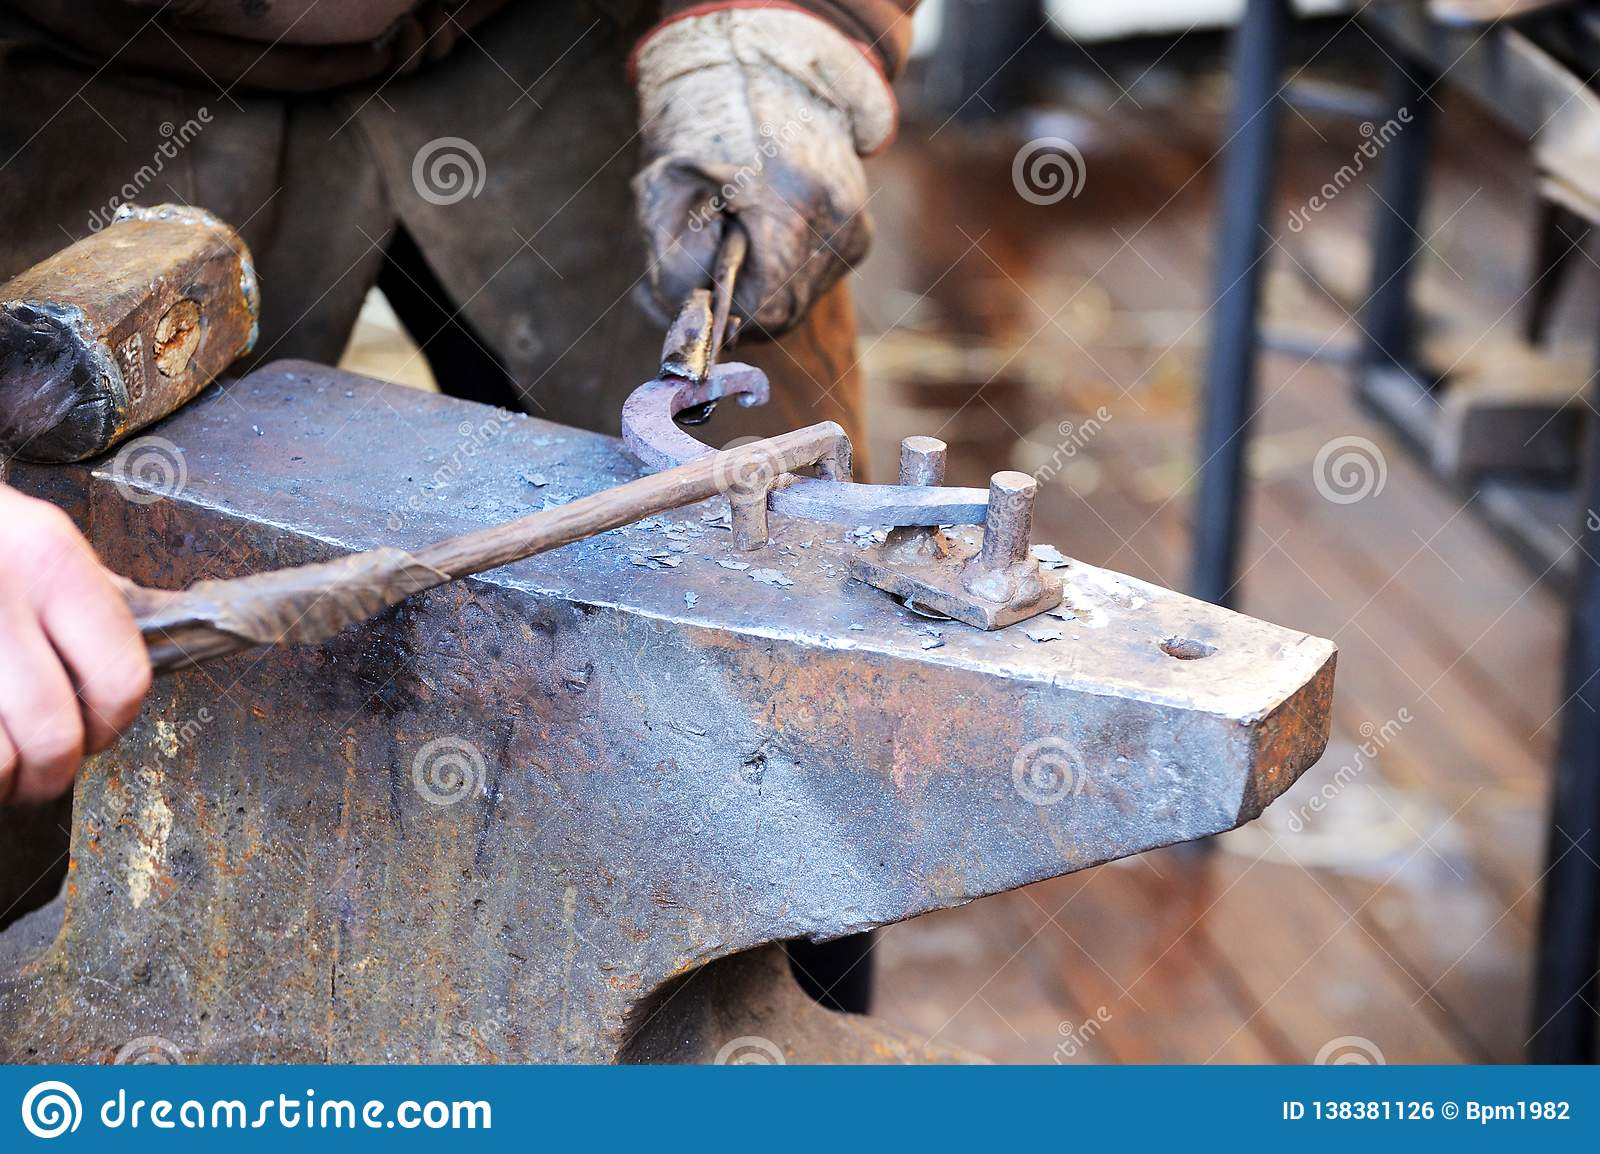 Blacksmith Working Metal With Hammer On The Anvil Stock